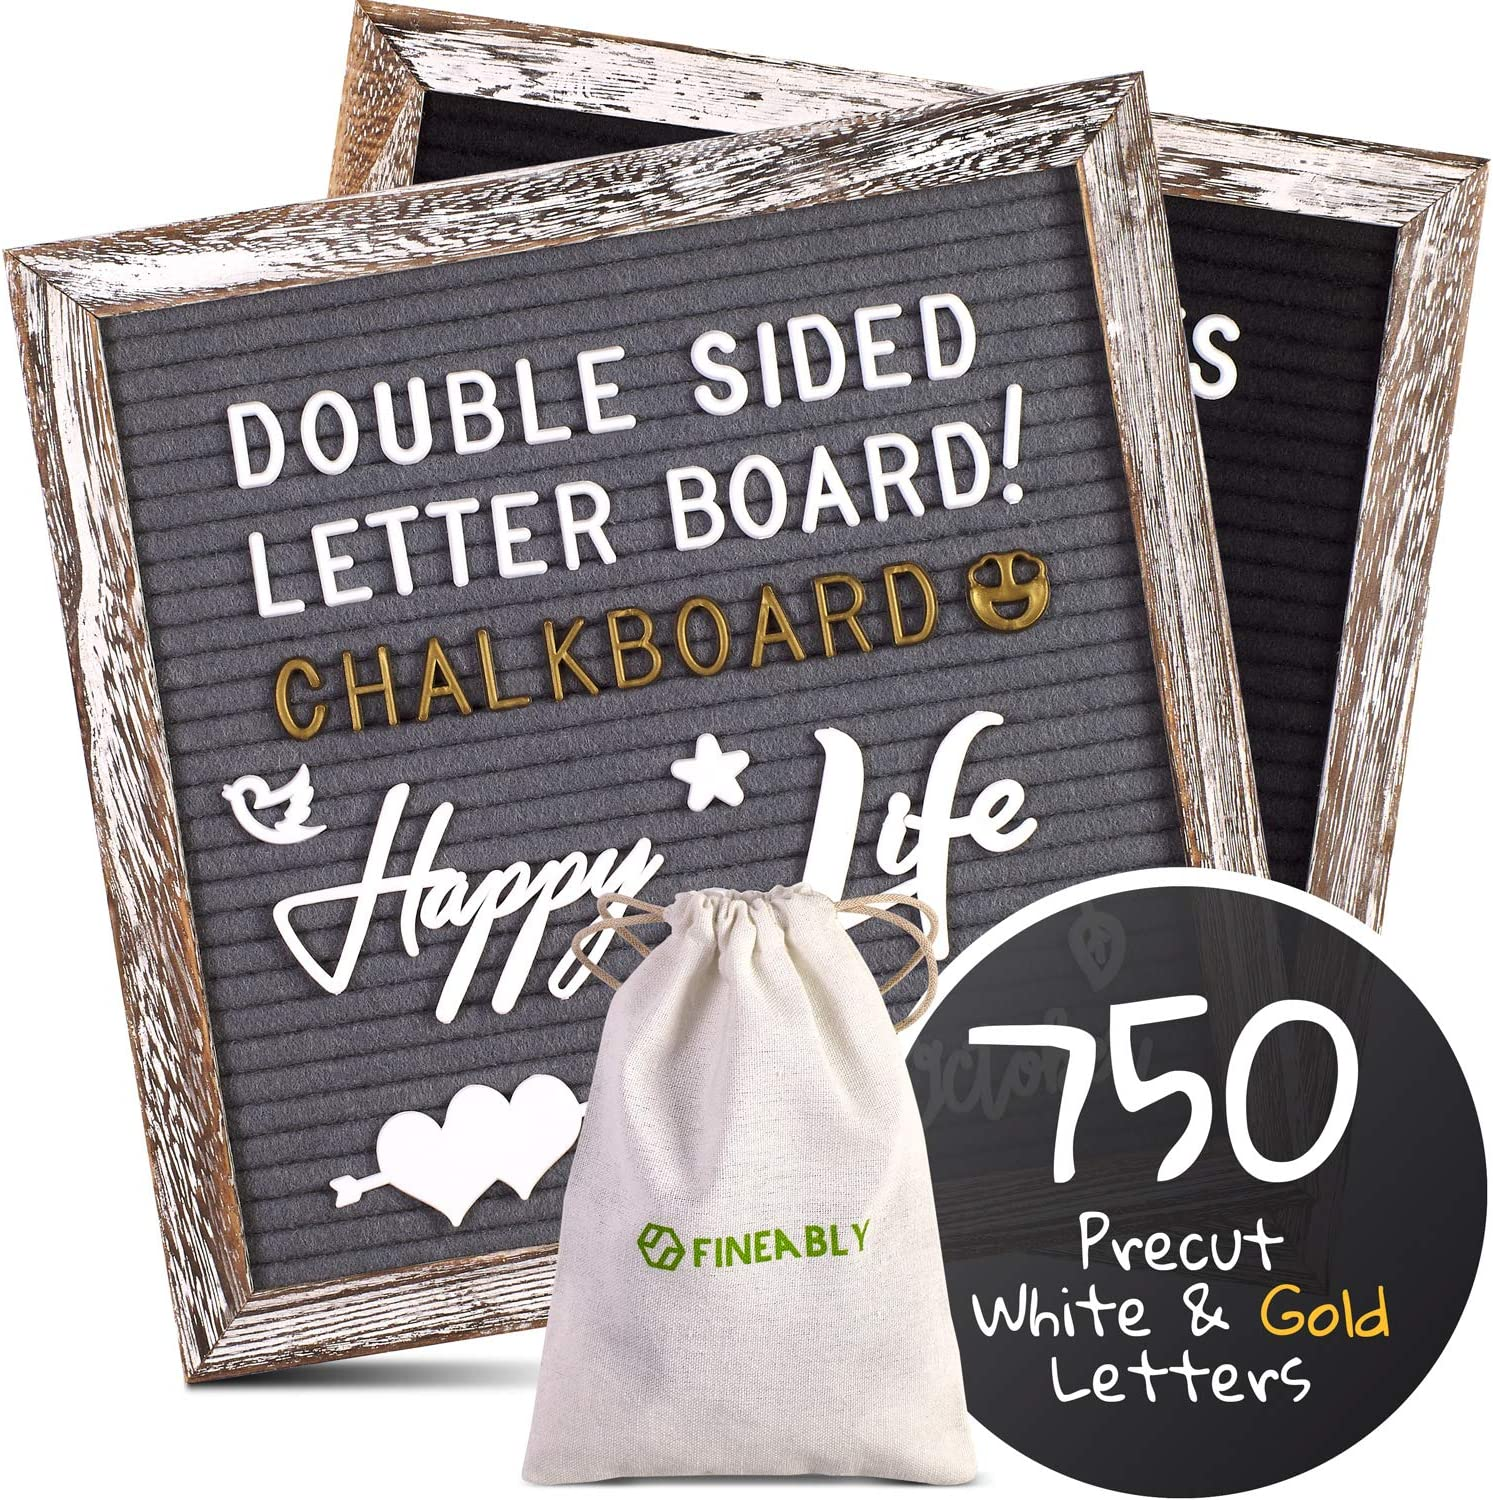 Class Announcements or Cafe Menus Leave Inspiring Messages Dual Sided Felt Letter Board with Letters by Fineably 750 Precut White and Gold Letters Numbers and Emoji Symbols